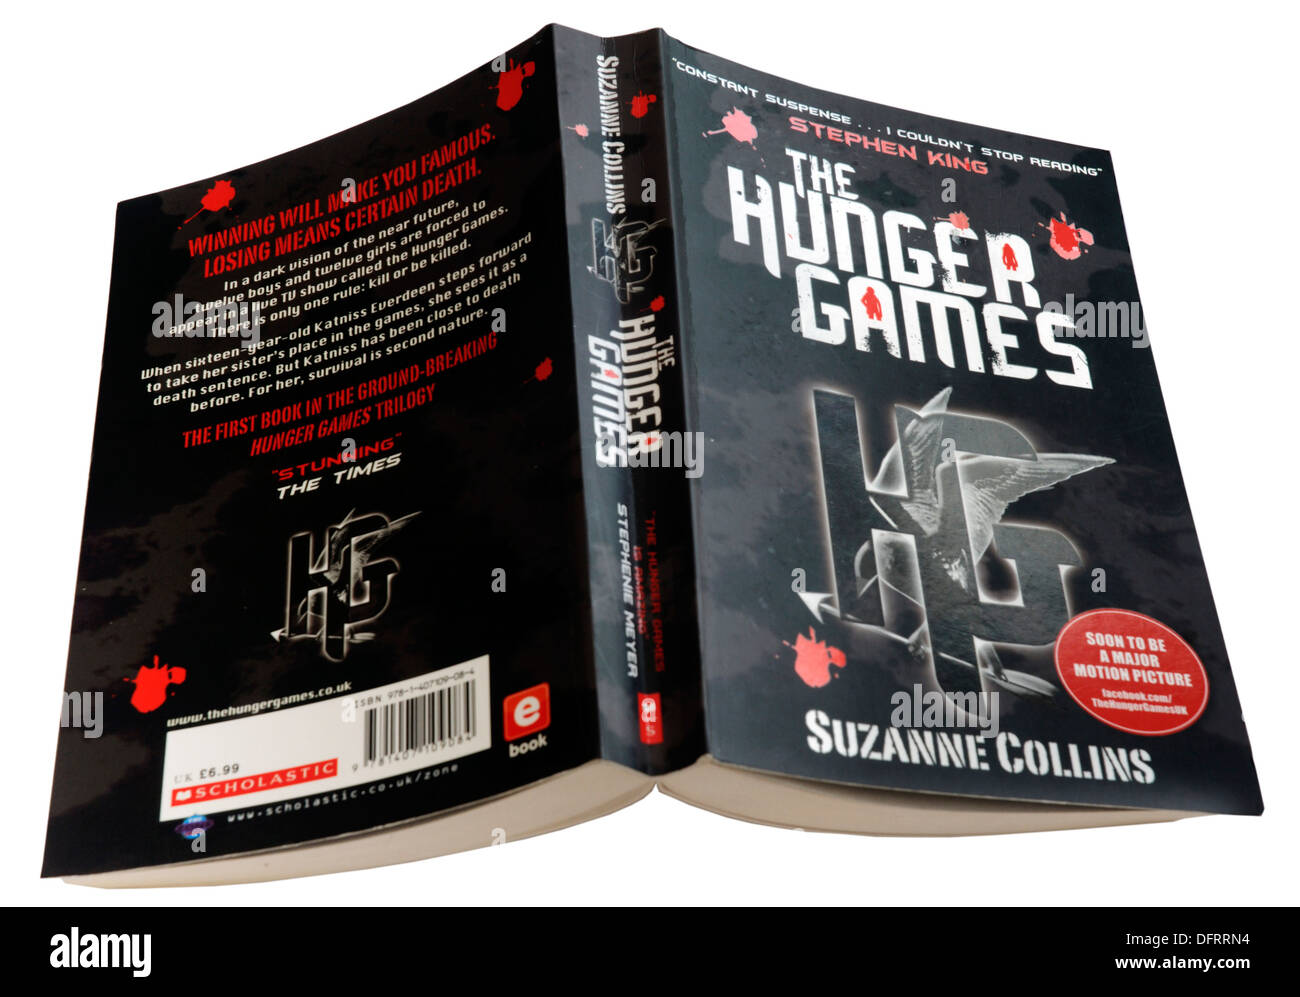 the dystopian properties of panem in the hunger games a novel series by suzanne collins The first movie saw katniss and her friend peeta, played by hutcherson, emerge as the winners of the 74th hunger games, a fight to the death between children organised by the evil rulers of panem.